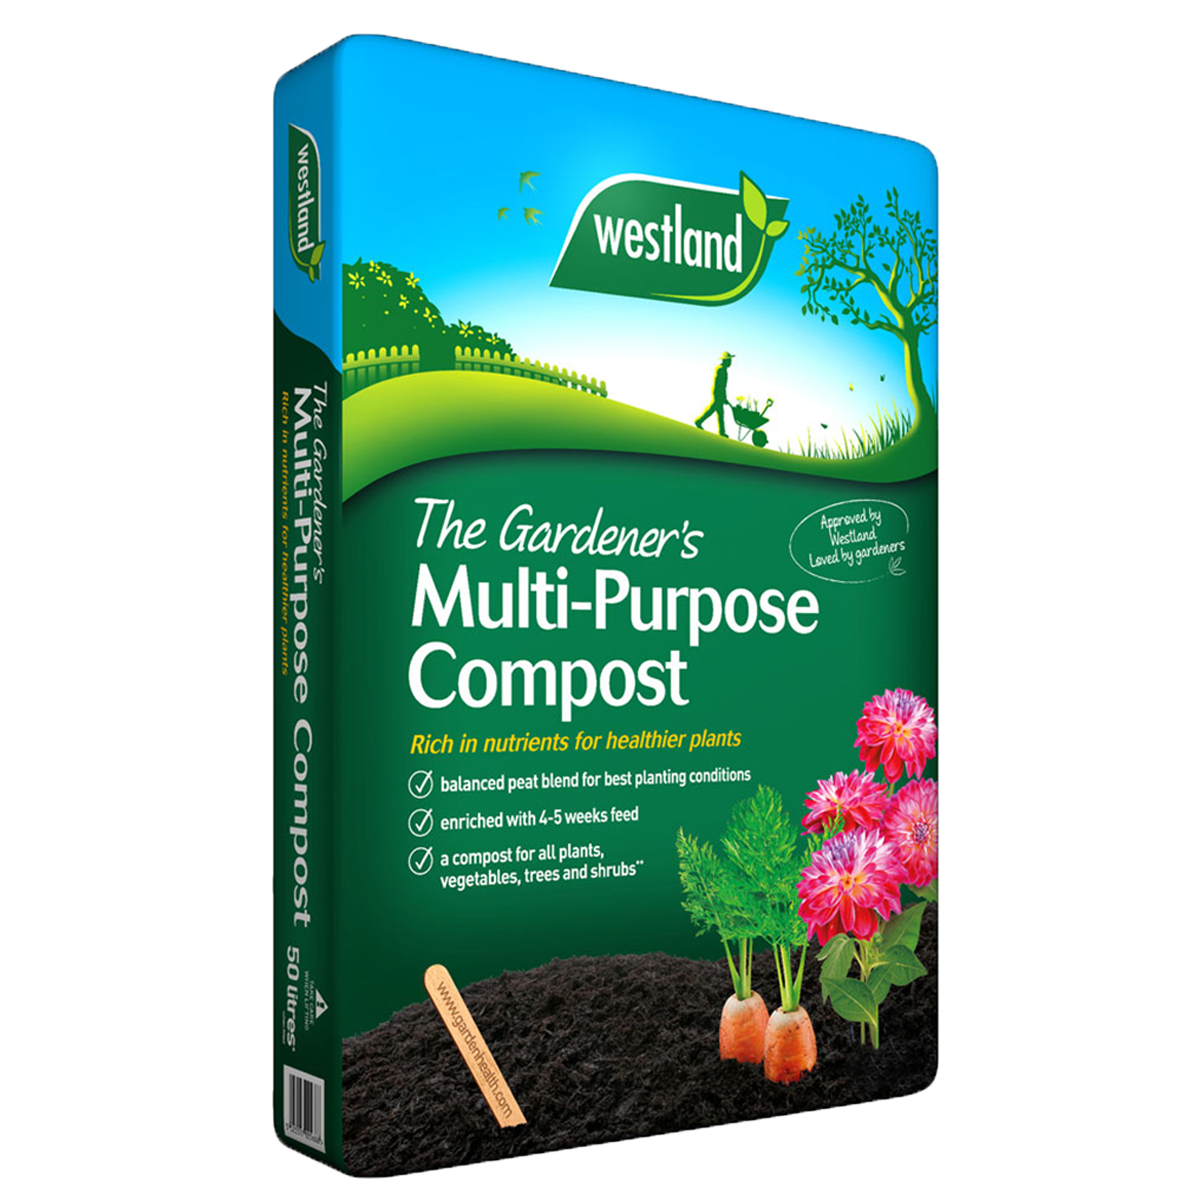 BUY 4 BAGS OF WESTLAND 50 LITRE MULTI PURPOSE COMPOST FOR ONLY £12 INC VAT!